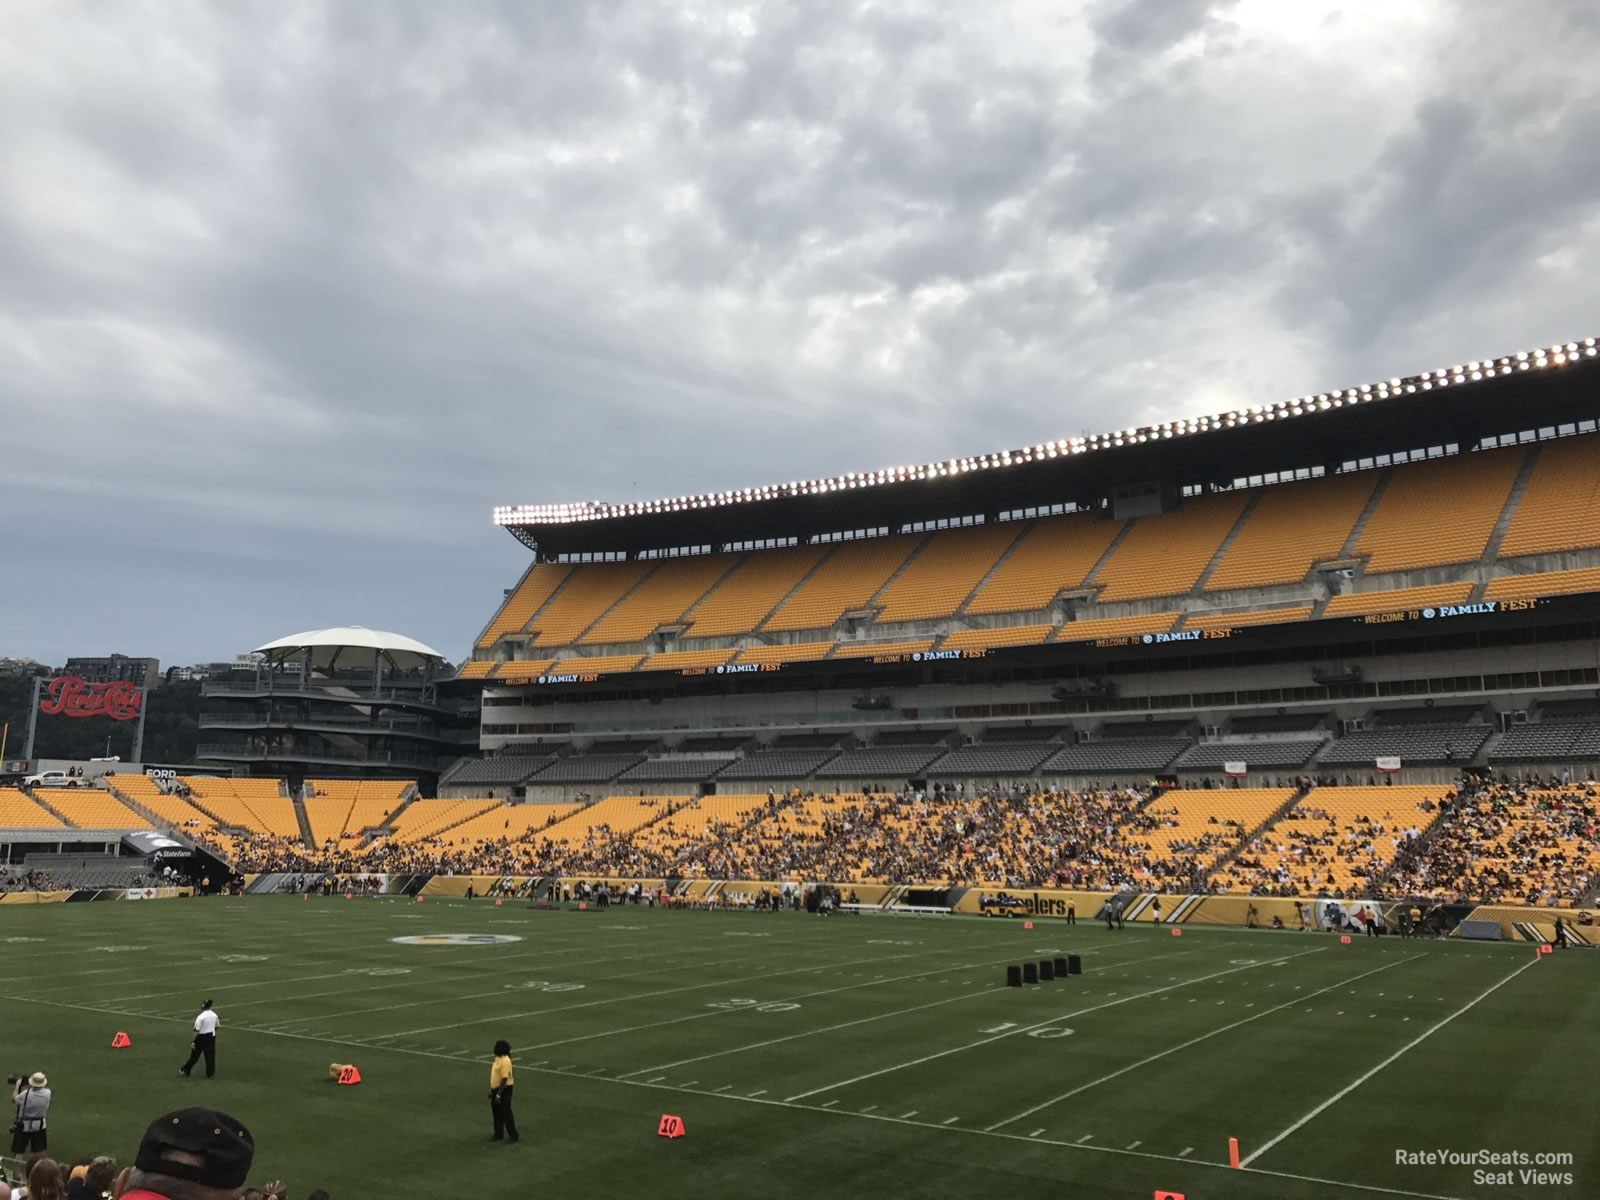 Heinz Field Section 115 - RateYourSeats.com